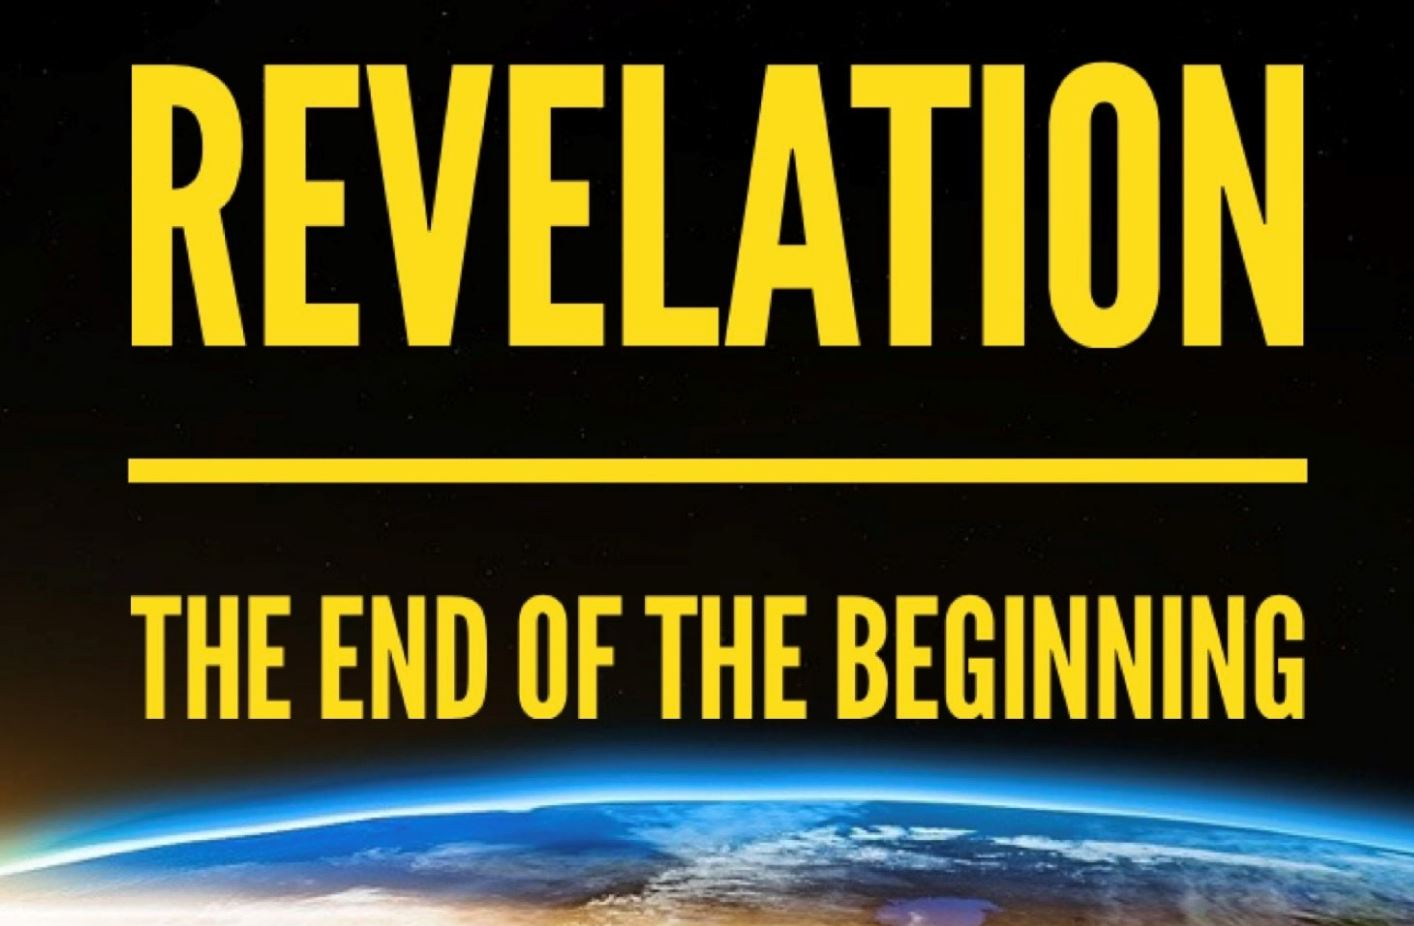 Here Are All the Revelation Videos